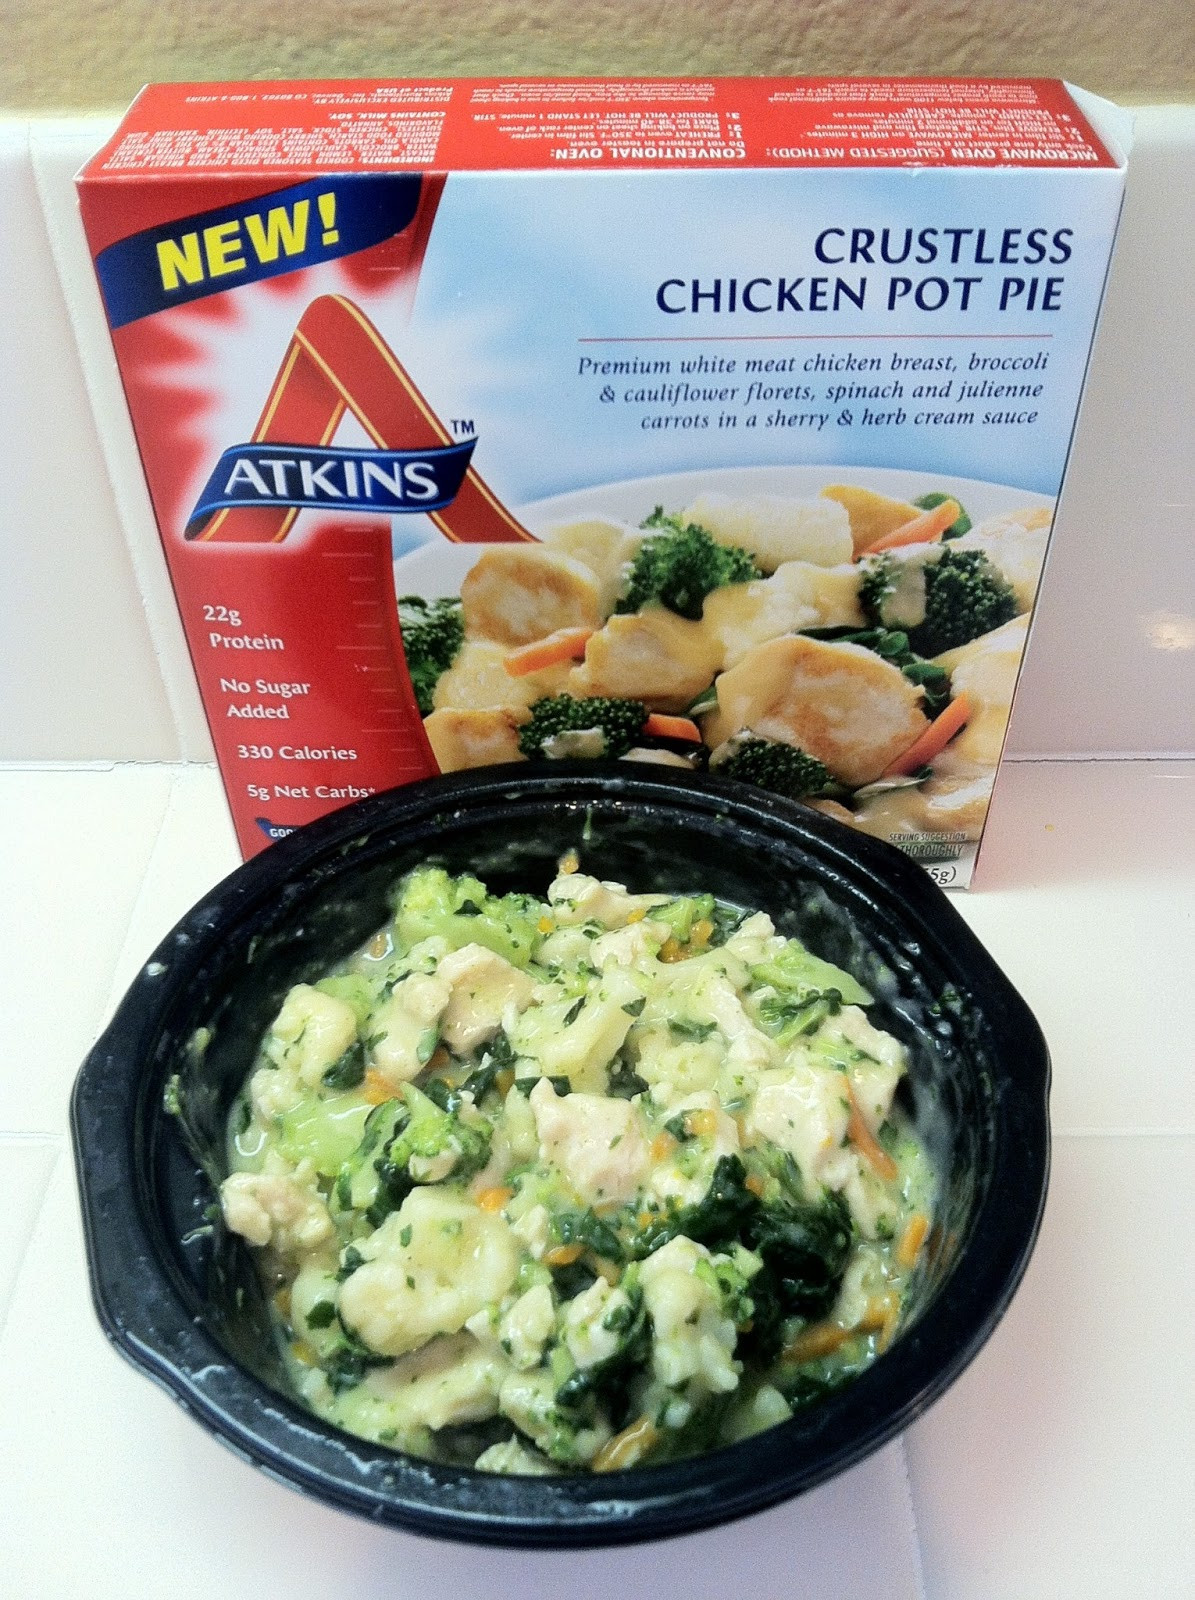 Crustless Chicken Pot Pie  Low Carb Layla Atkins Crustless Chicken Pot Pie Review